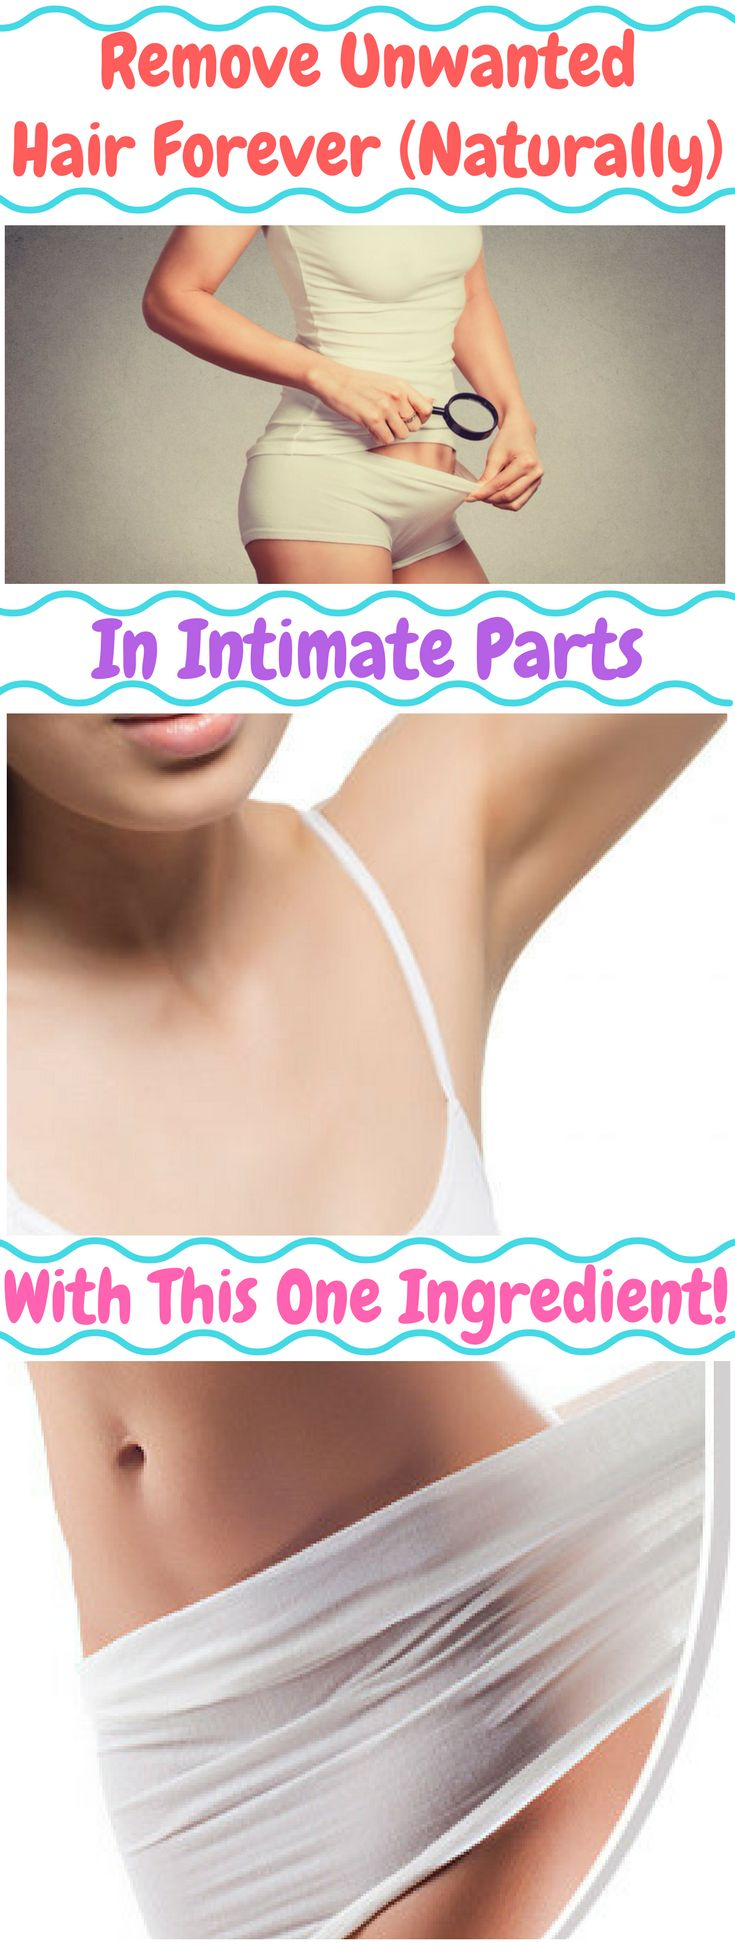 remove-unwanted-hair-forever-in-intimate-parts